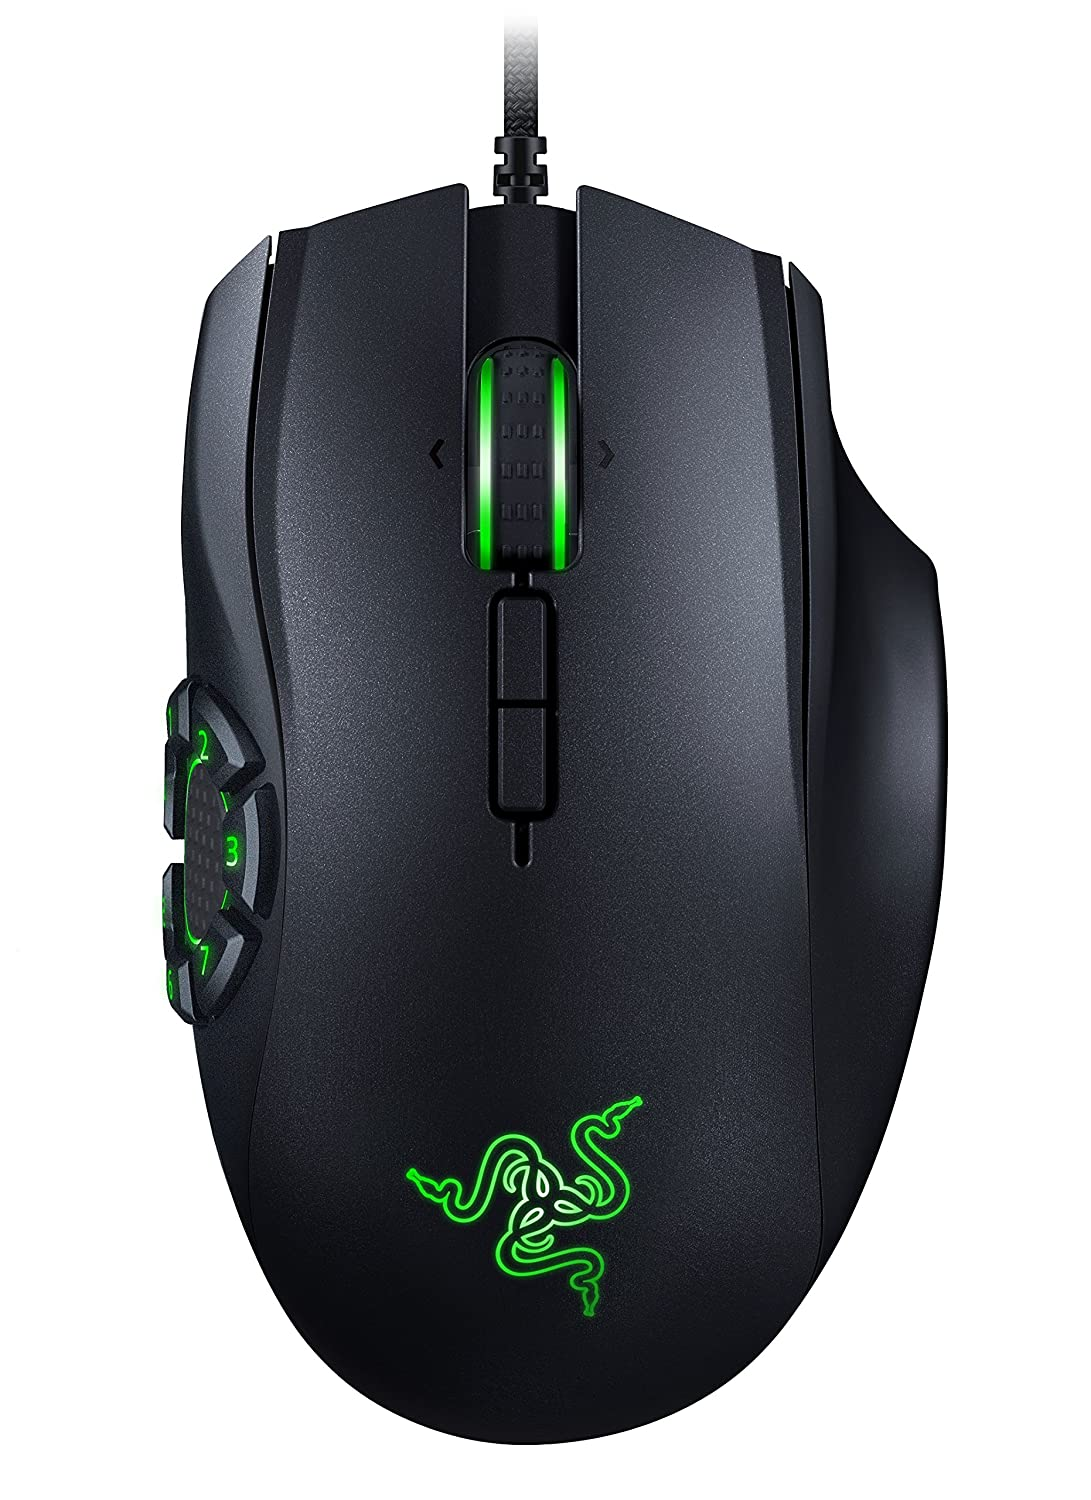 RAZER NAGA HEX WINDOWS 7 DRIVER